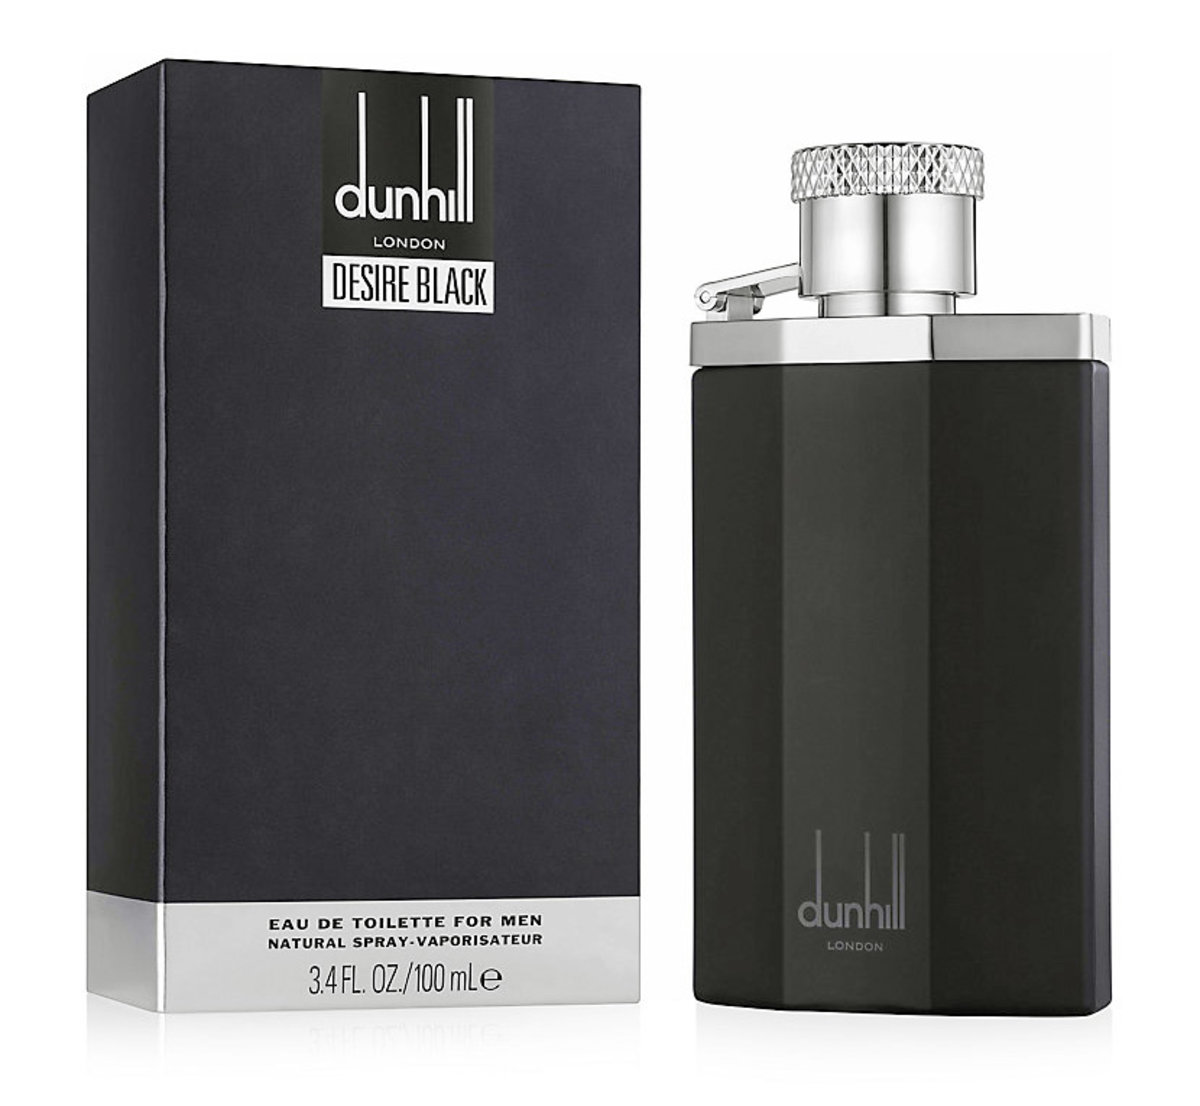 Dunhill London Desire Black 100mL 男士淡香水